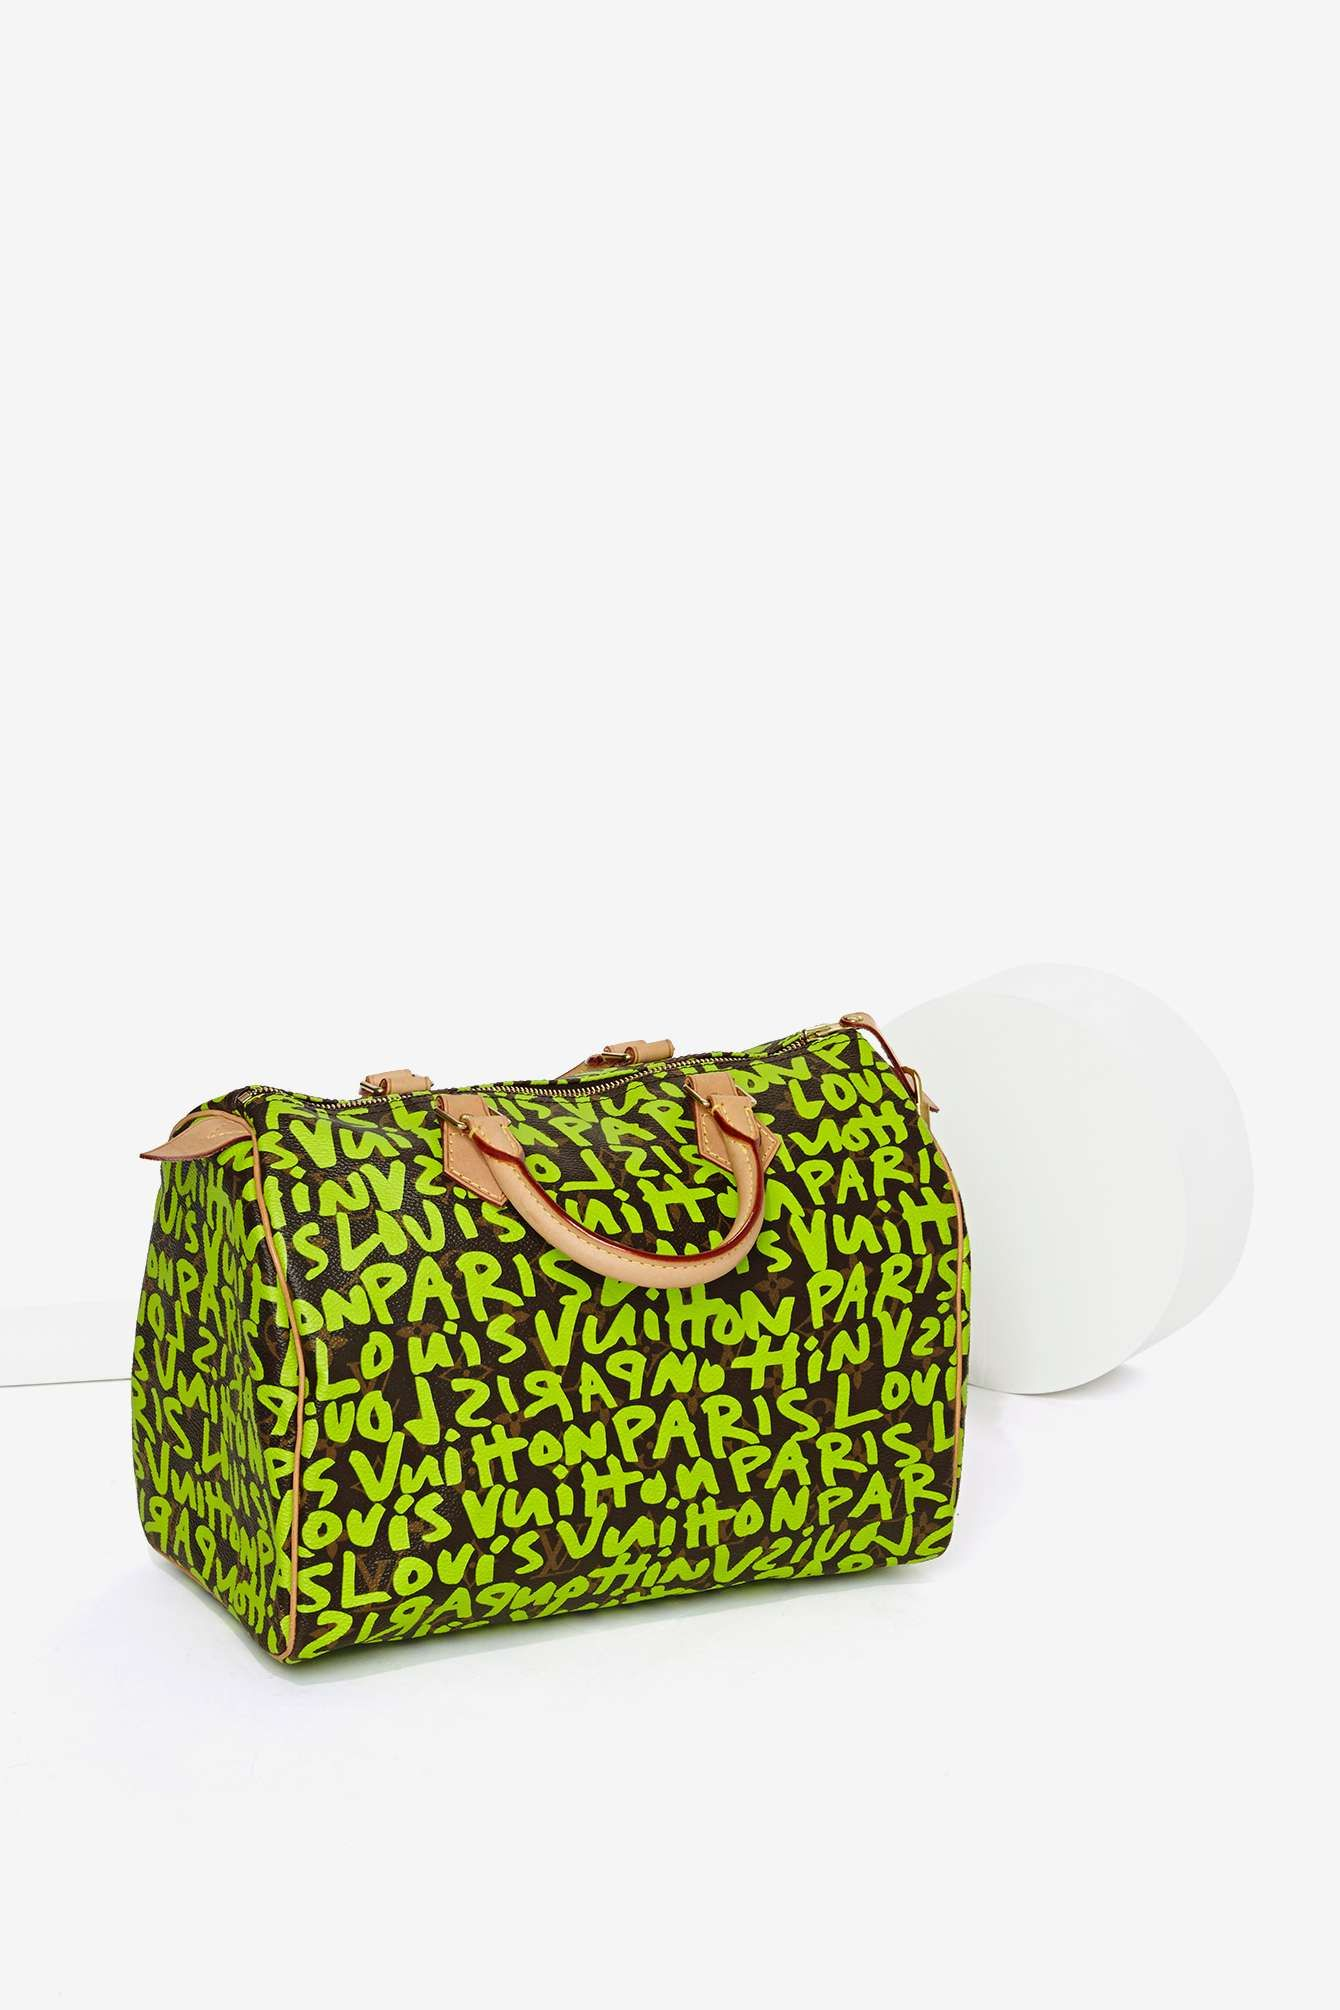 Vintage Louis Vuitton Stephen Sprouse Leather Bag What S New At Nasty Gal